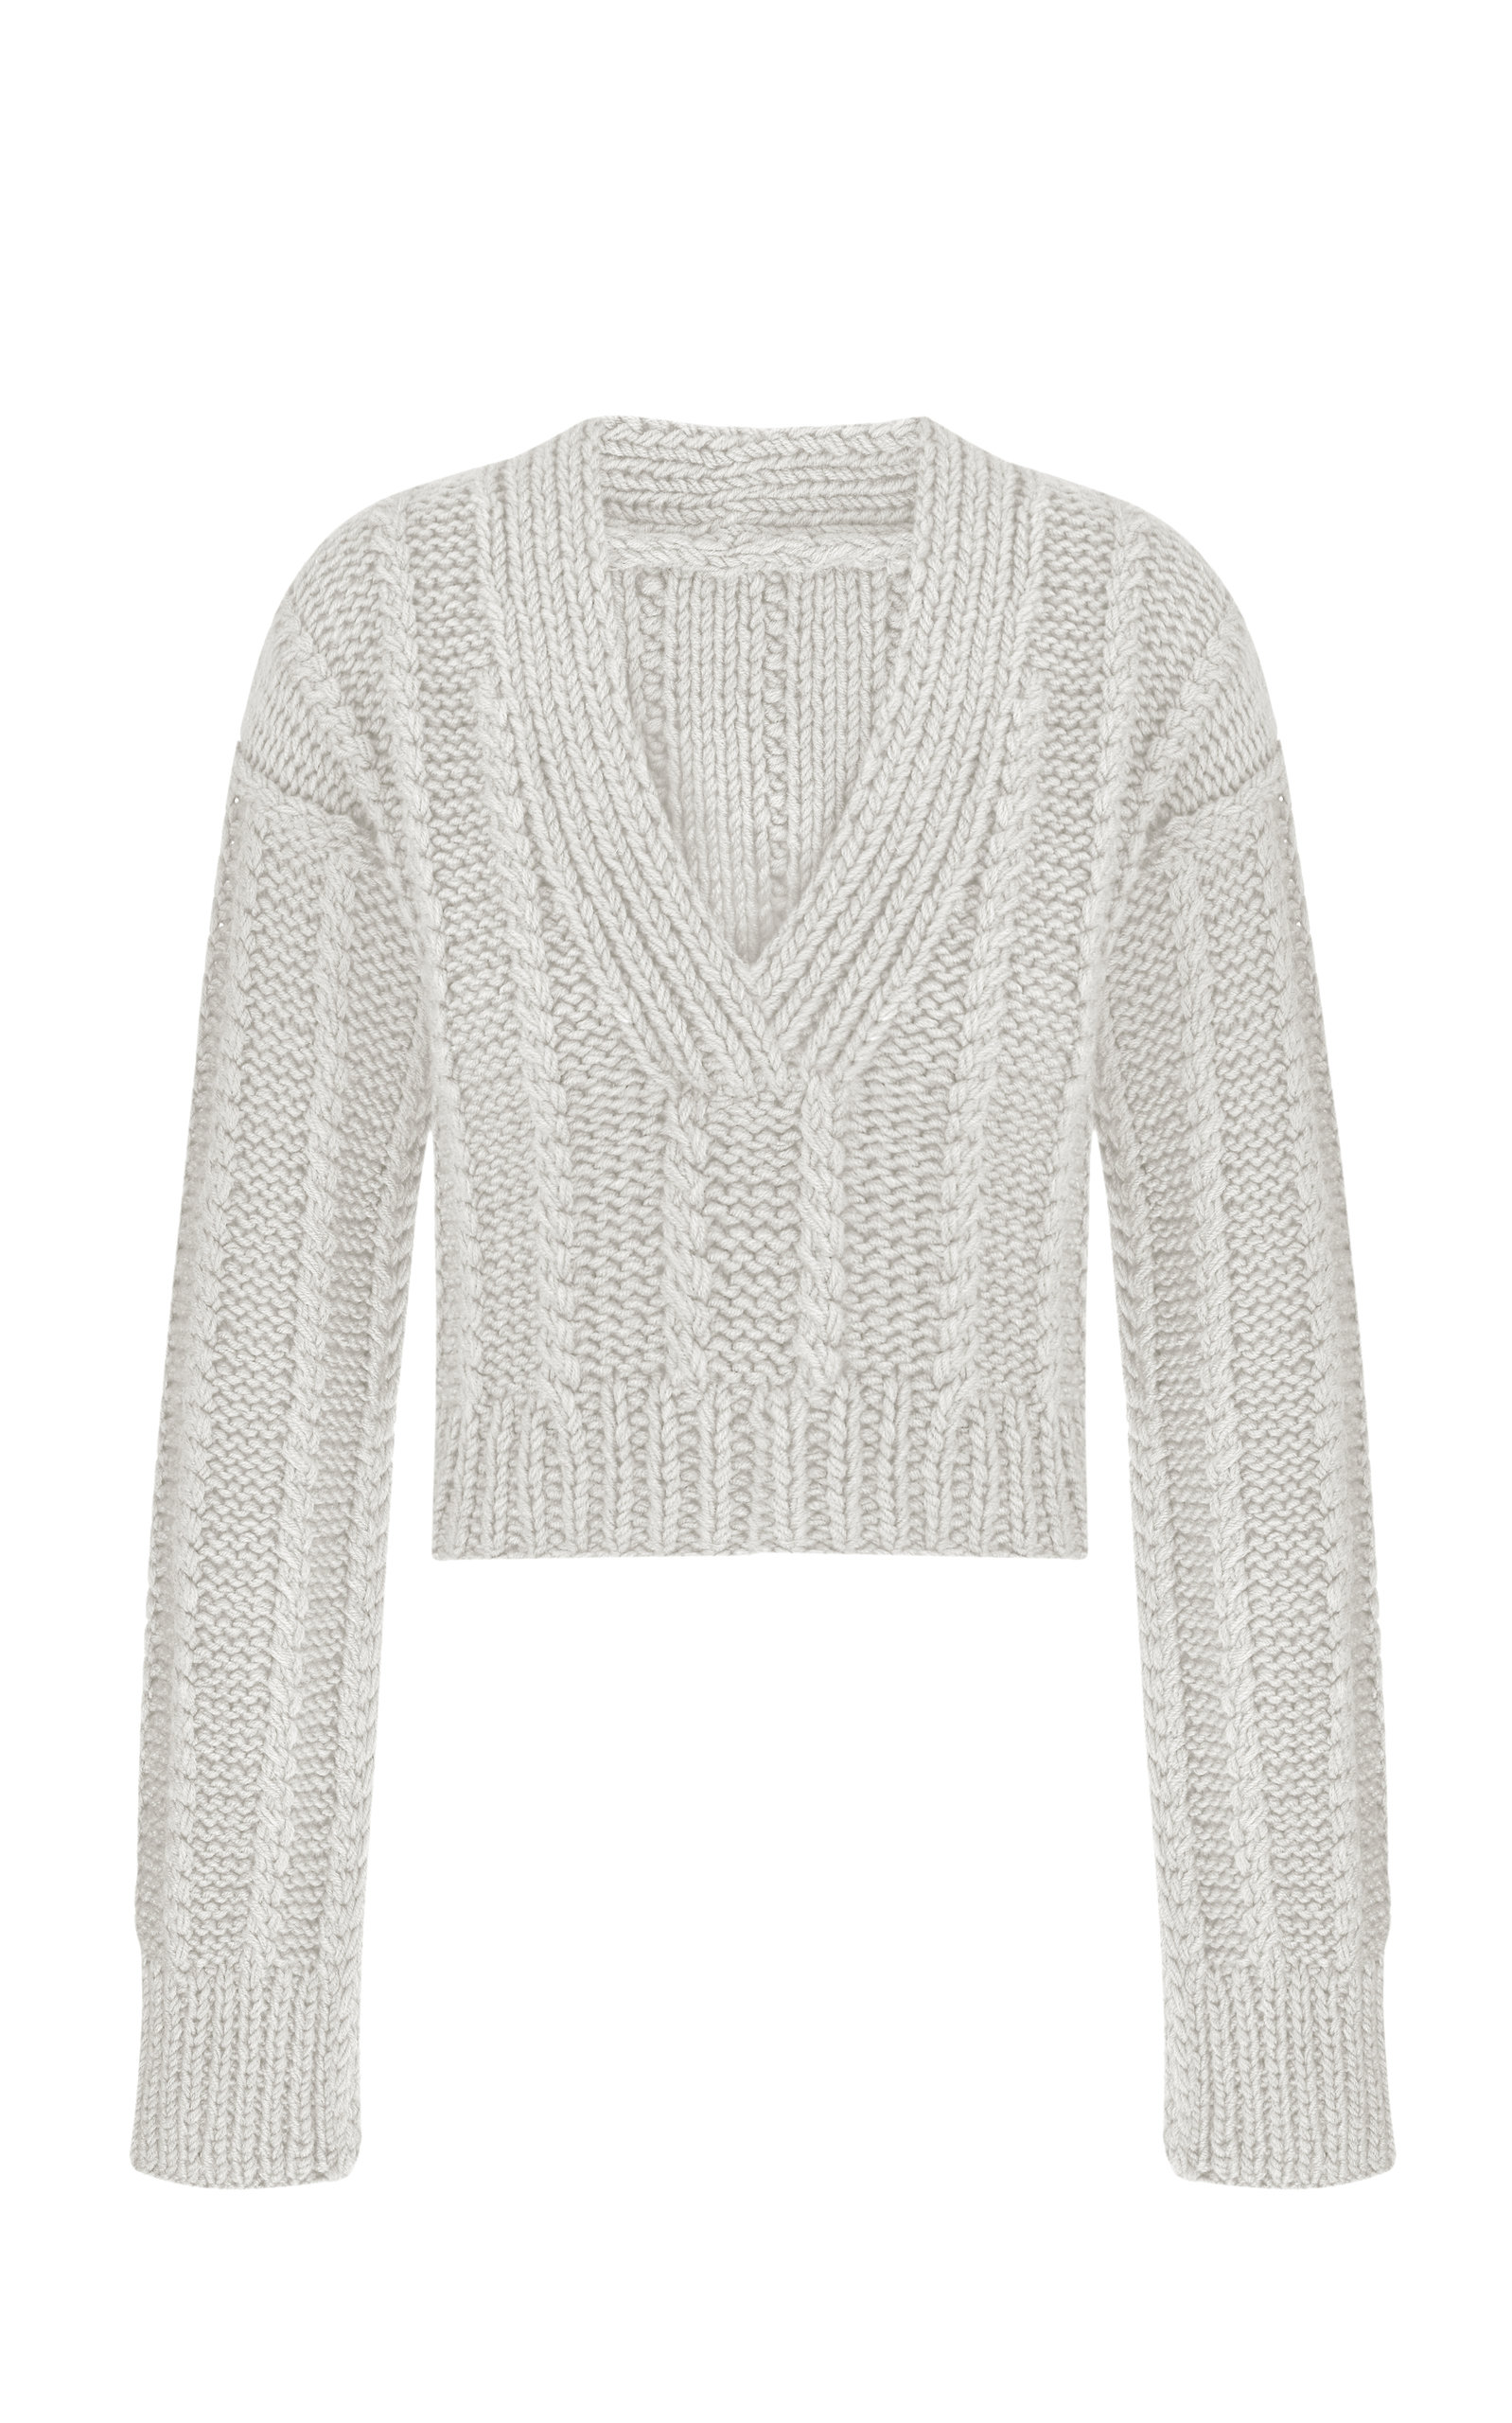 Women's November Cable-Knit Cropped Sweater